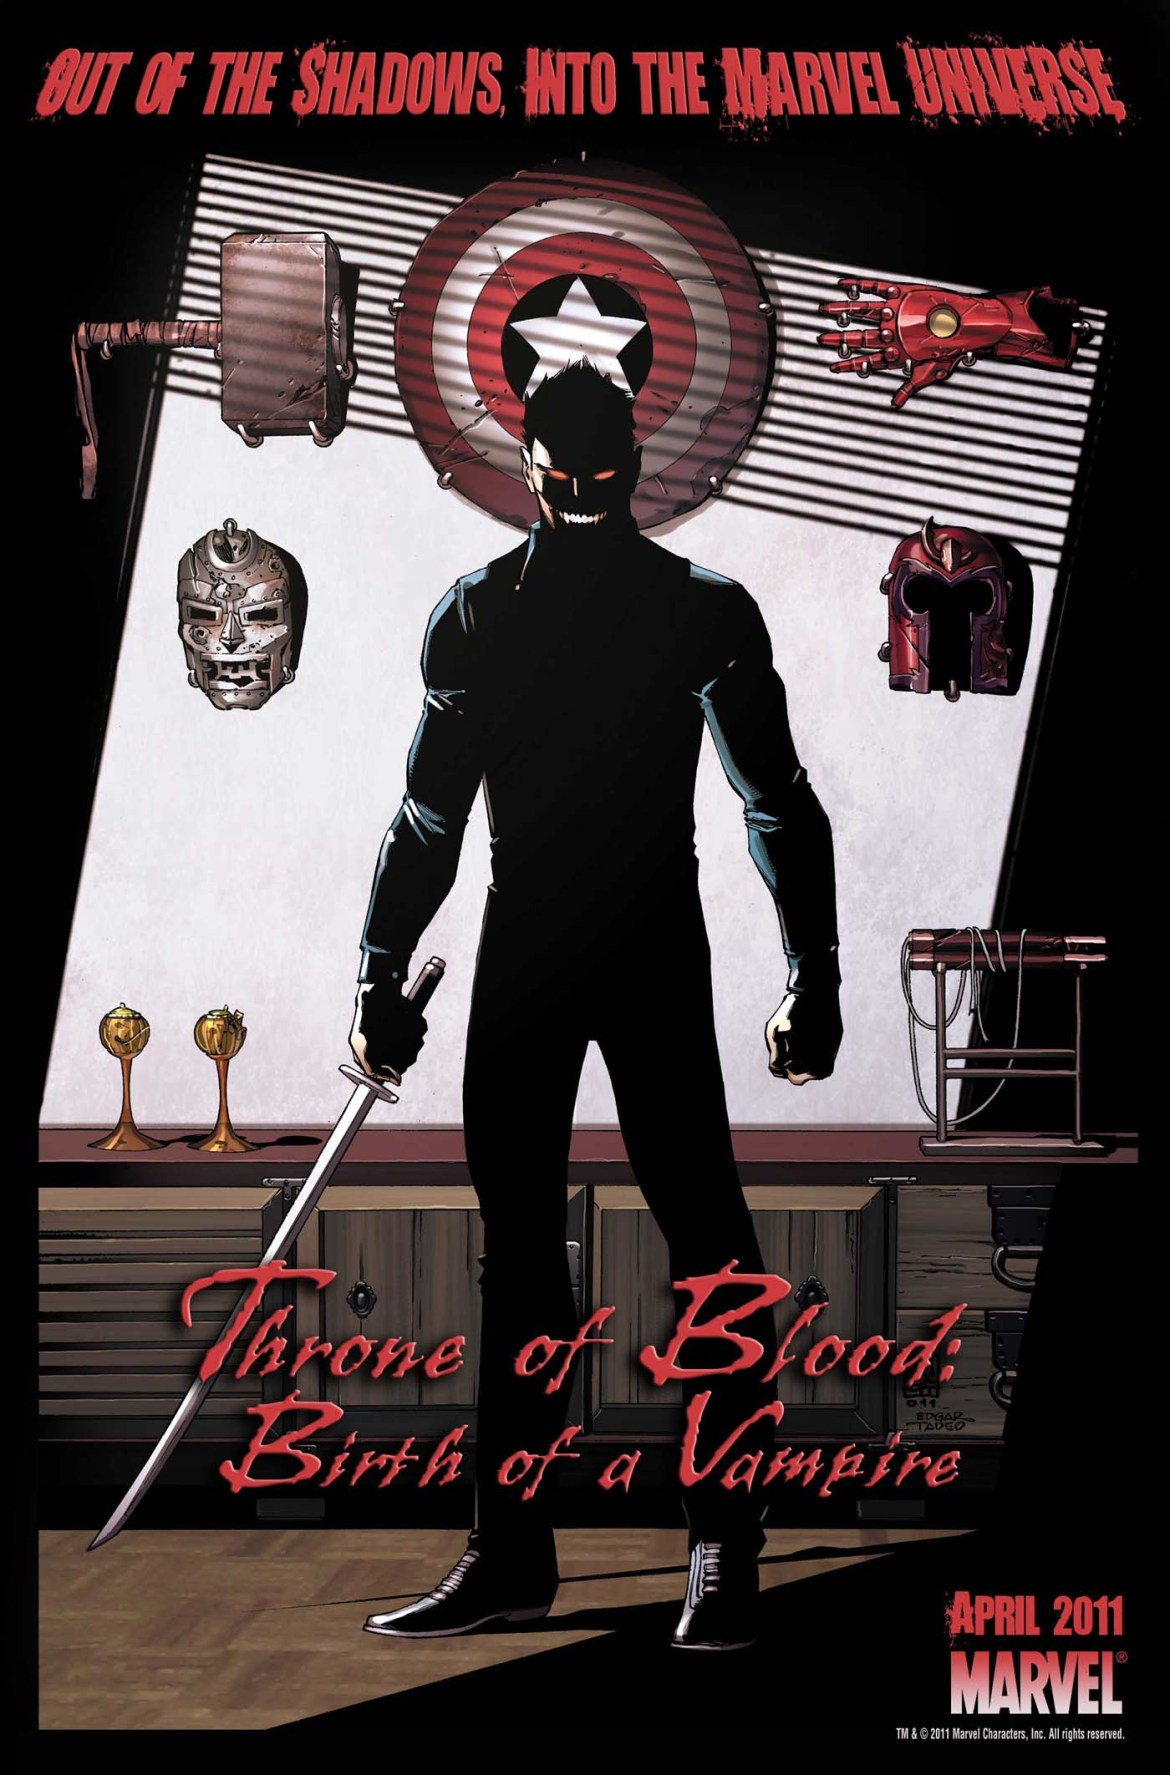 THRONEOFBLOOD_BIRTHOFAVAMPIRE Fear Itself: Today A Vampire Is Born